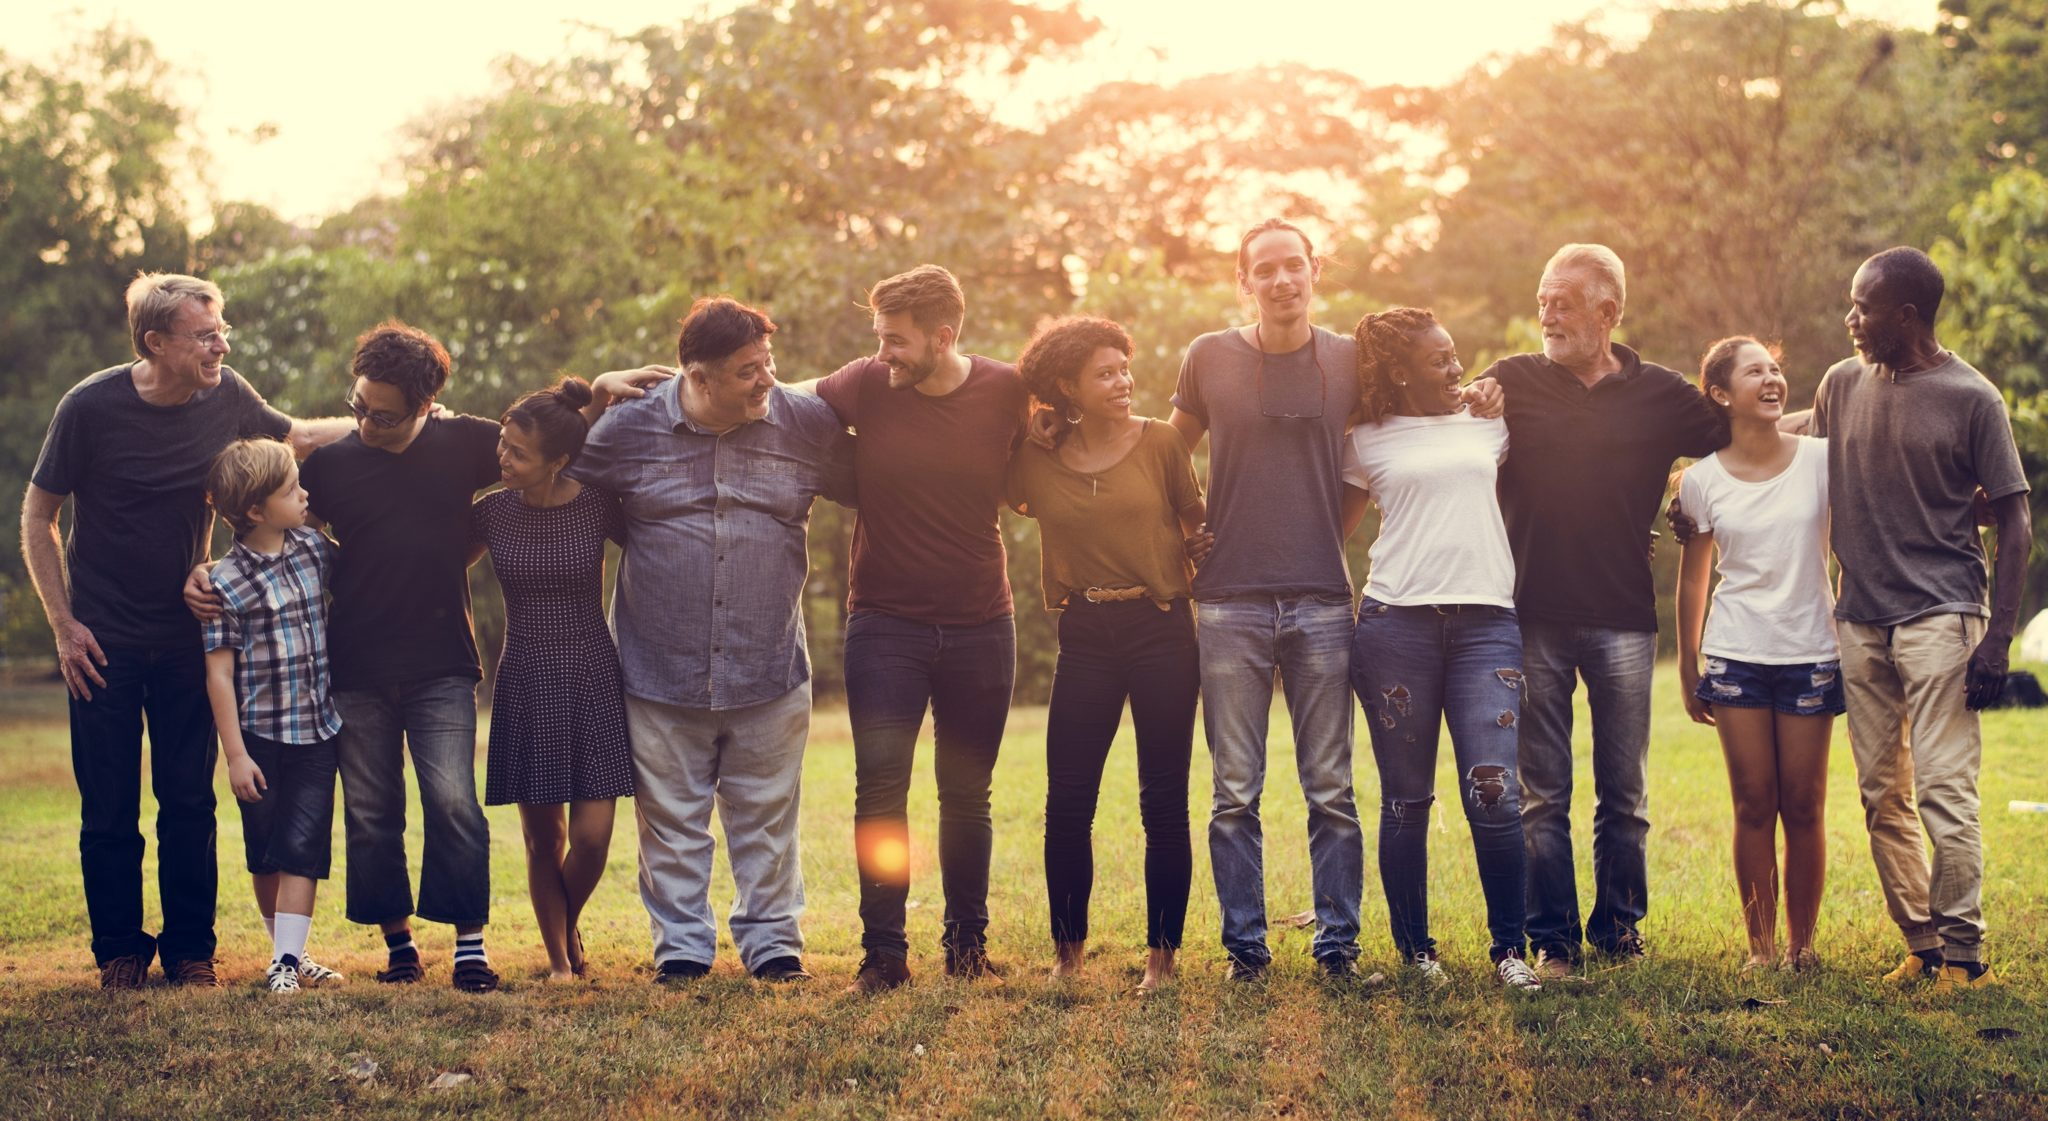 bigstock-Group-of-people-support-unity-184801630